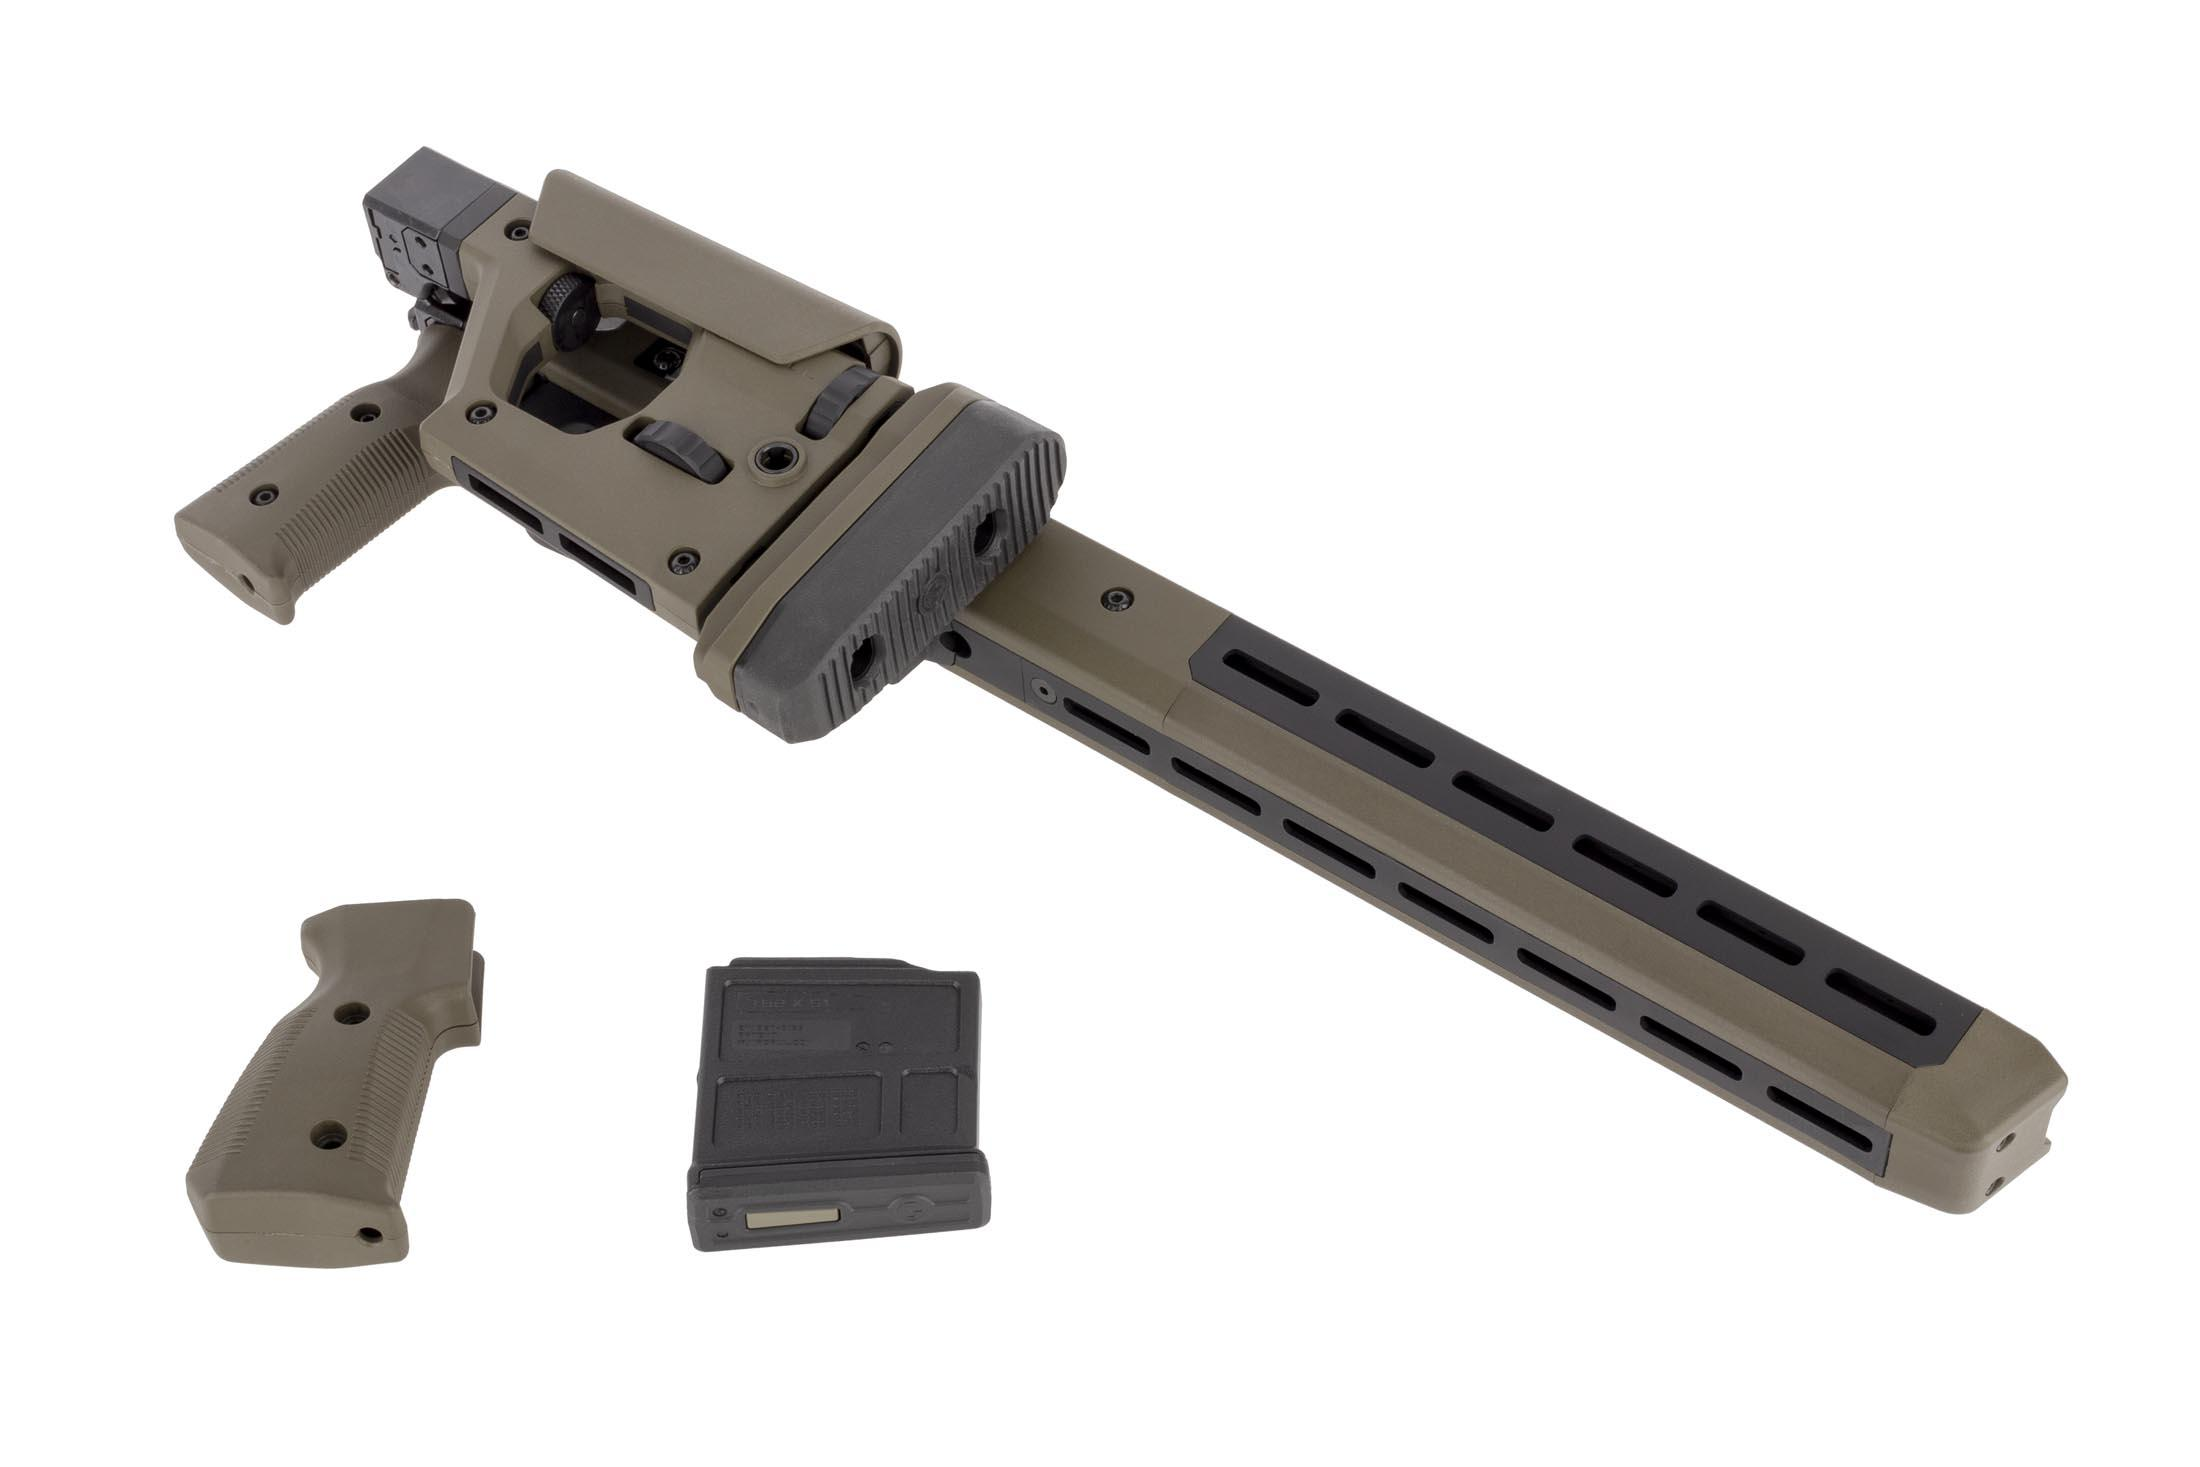 Magpul Pro 700 Chassis Short Action Folding Stock - Olive Drab Green